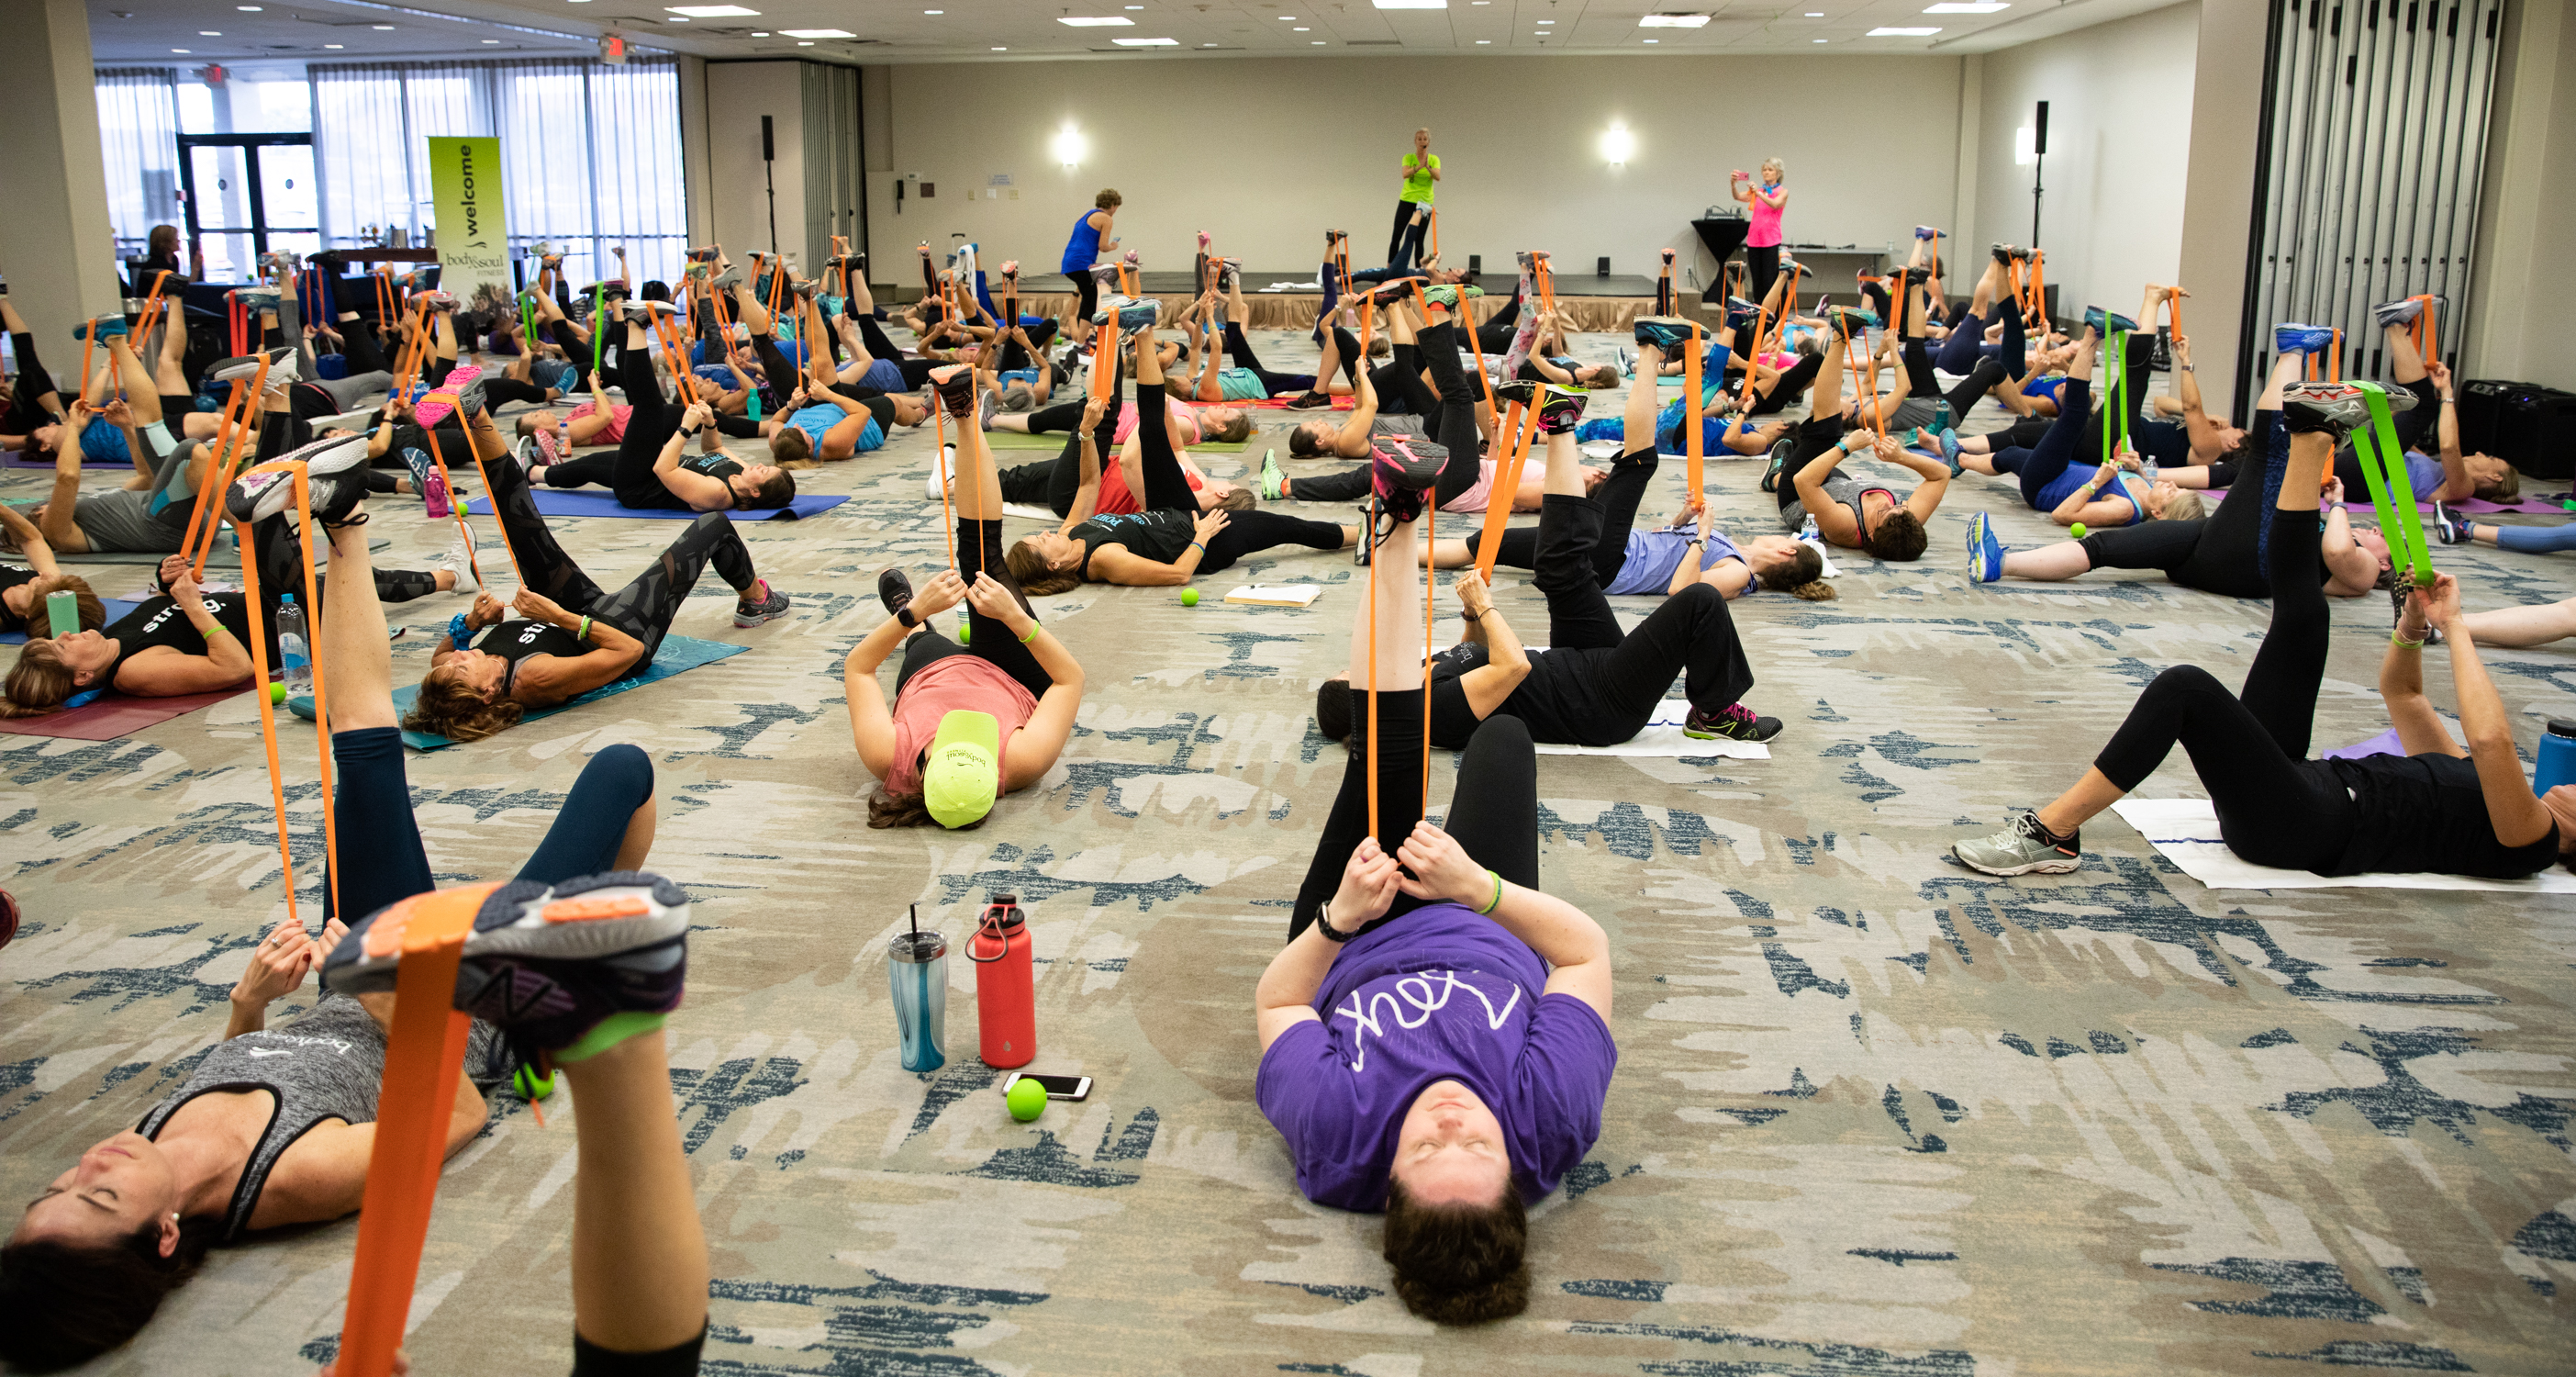 workouts, group fitness instructor training, CECs